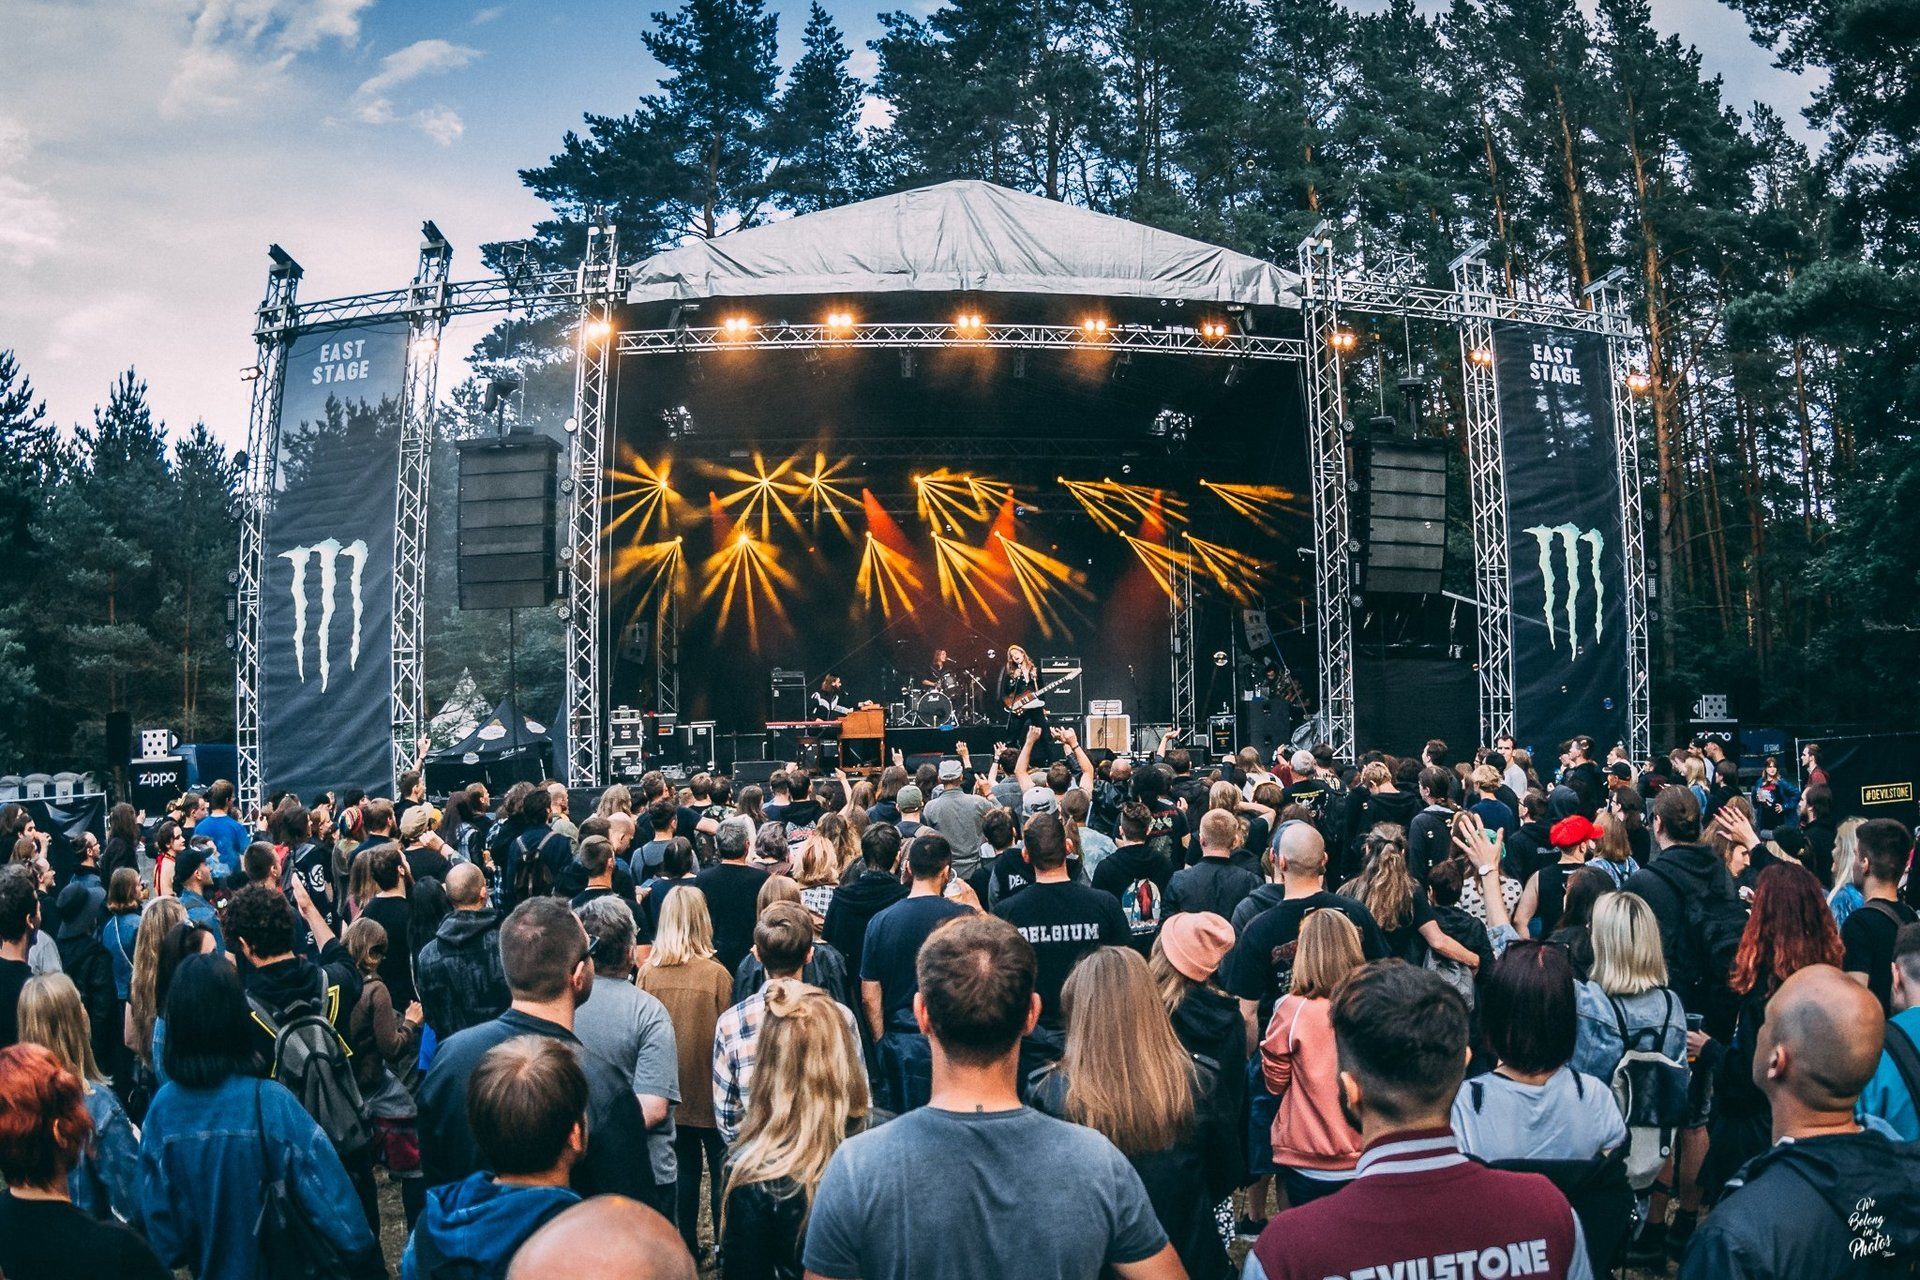 A crowd of people faces a huge scene in the forest